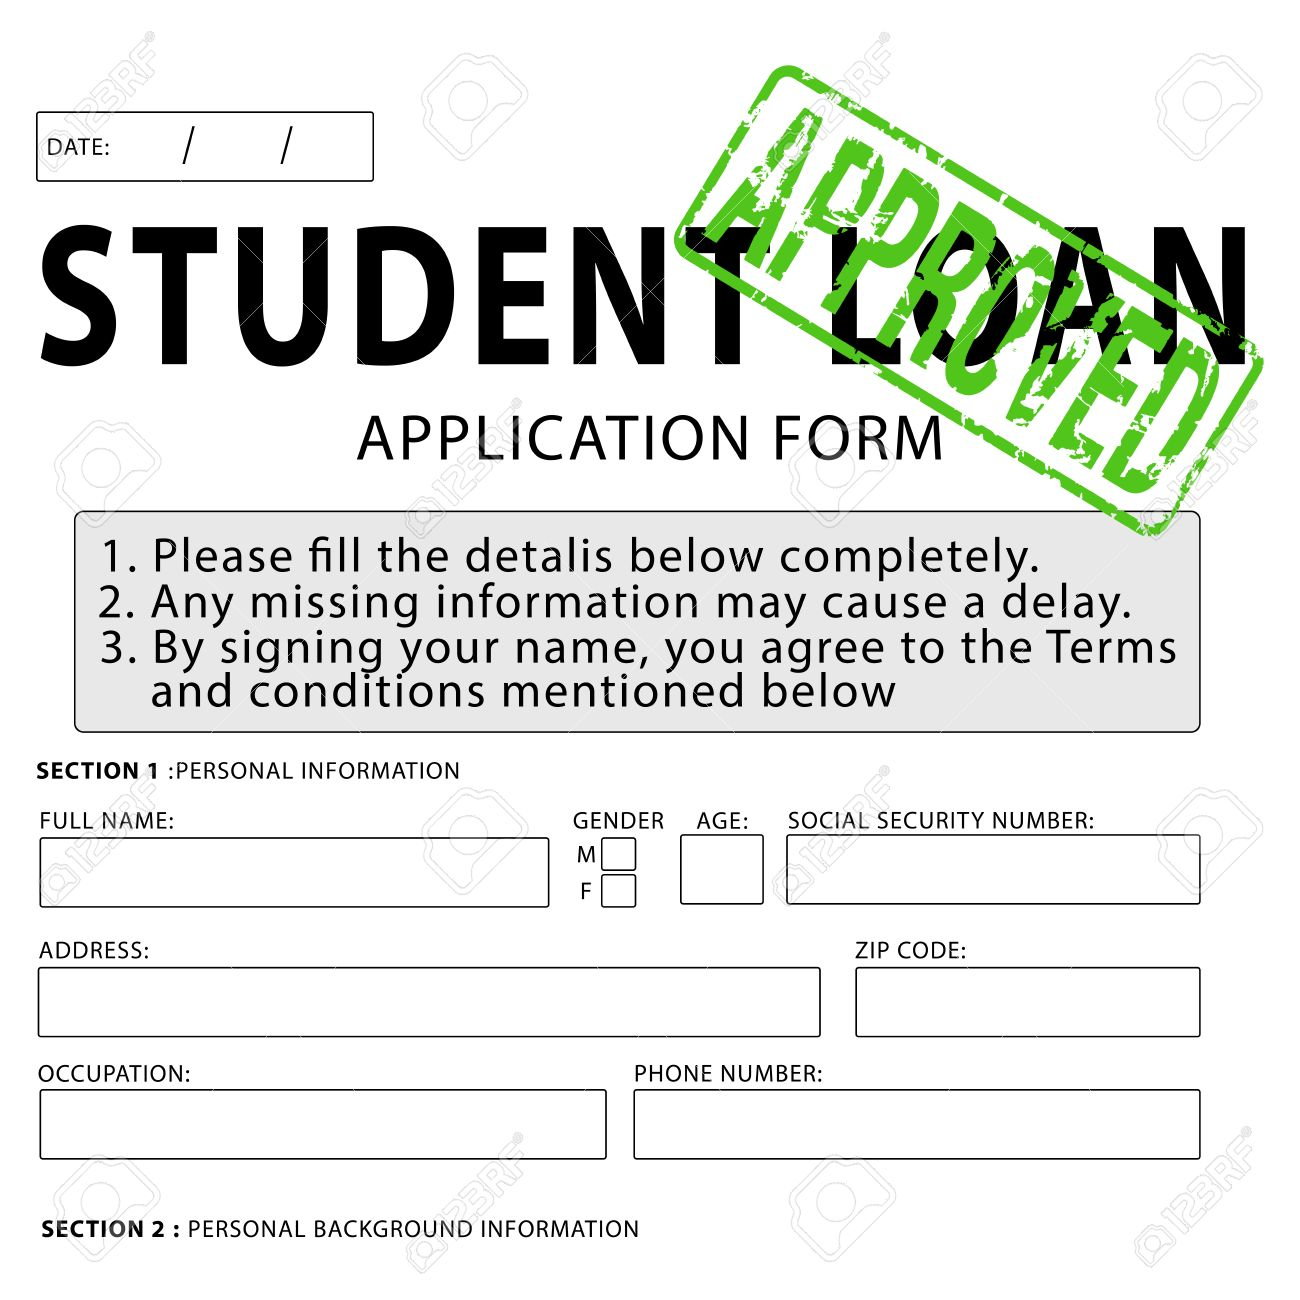 Student Loan Application Form With Green Approved Rubber Stamp – Students Loan Application Form